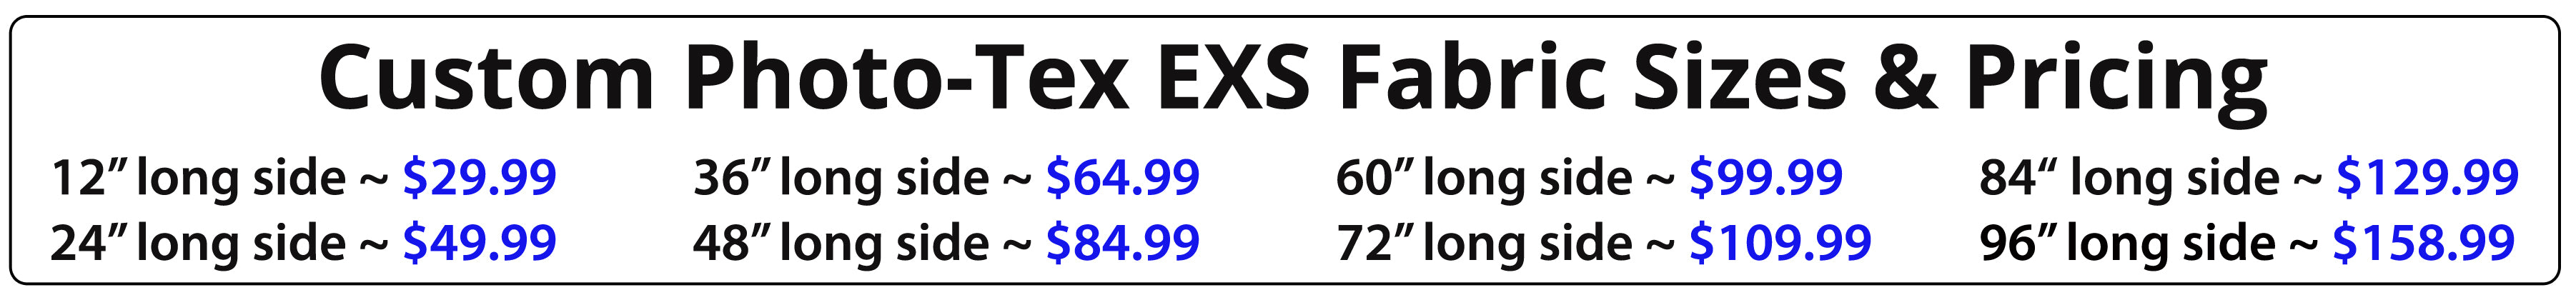 Wallhogs Custom Photo-Tex EXS Pricing